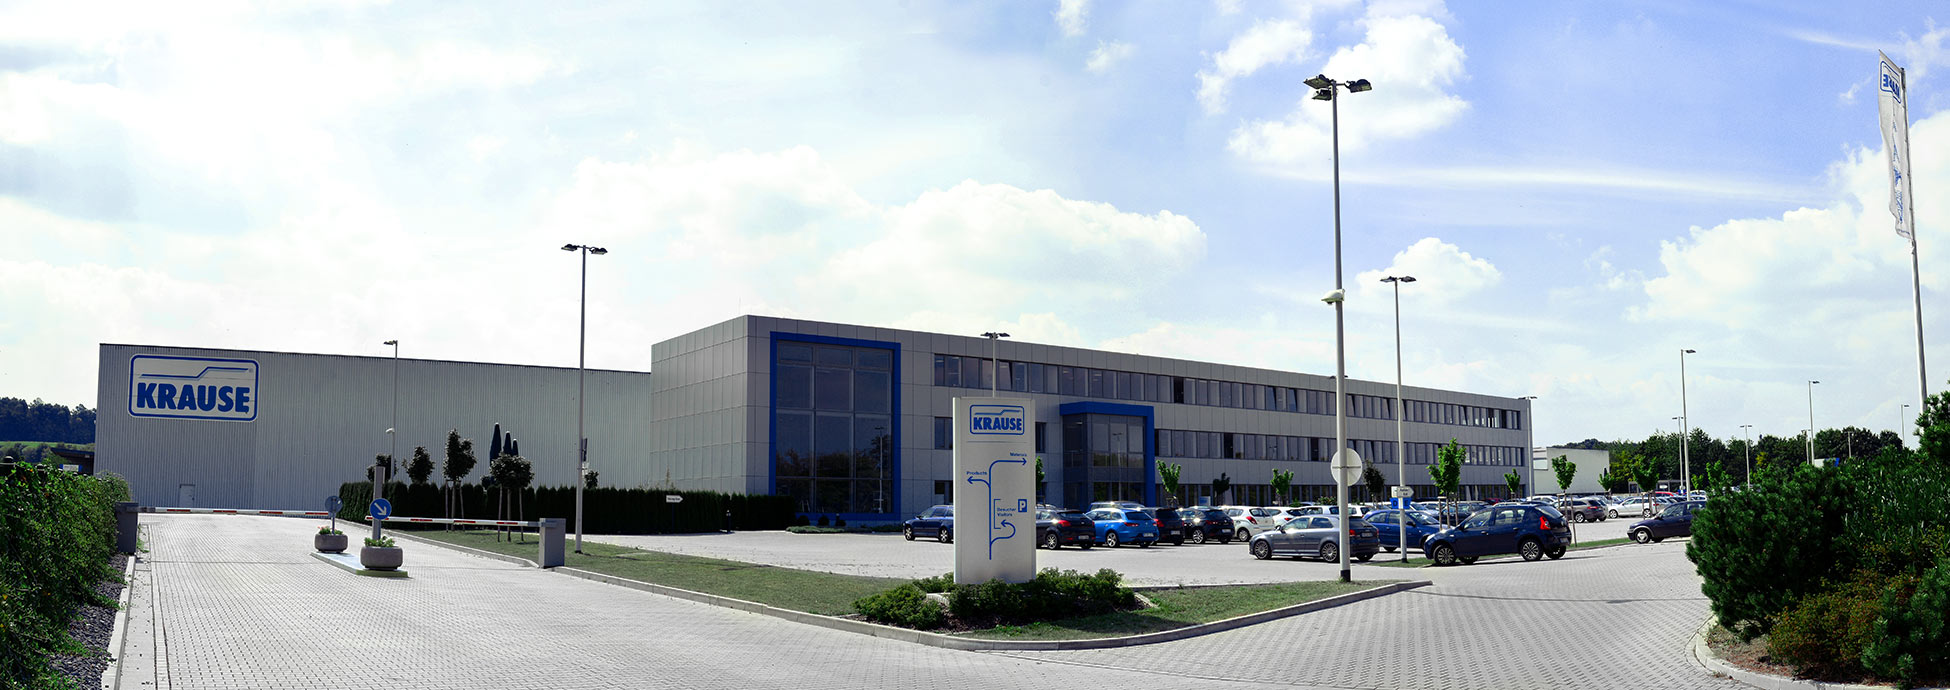 Das KRAUSE-Werk in Alsfeld